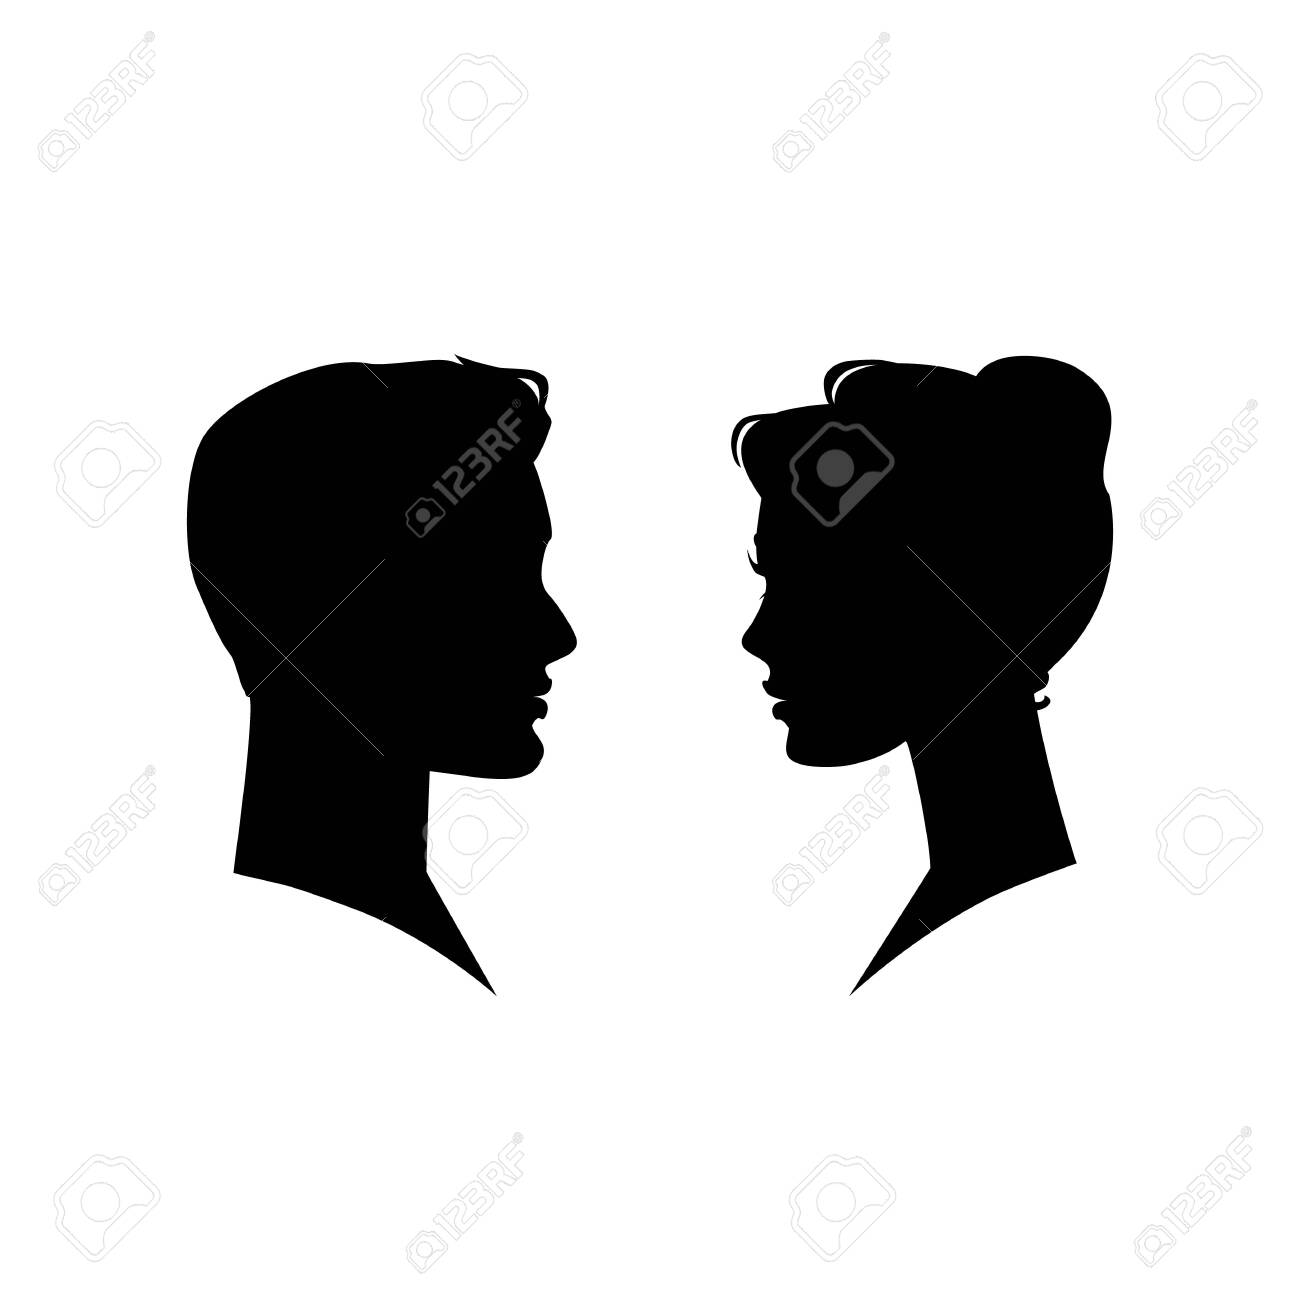 Man And Woman Silhouette Face To Face Vector Illustration Royalty Free Cliparts Vectors And Stock Illustration Image 124063375